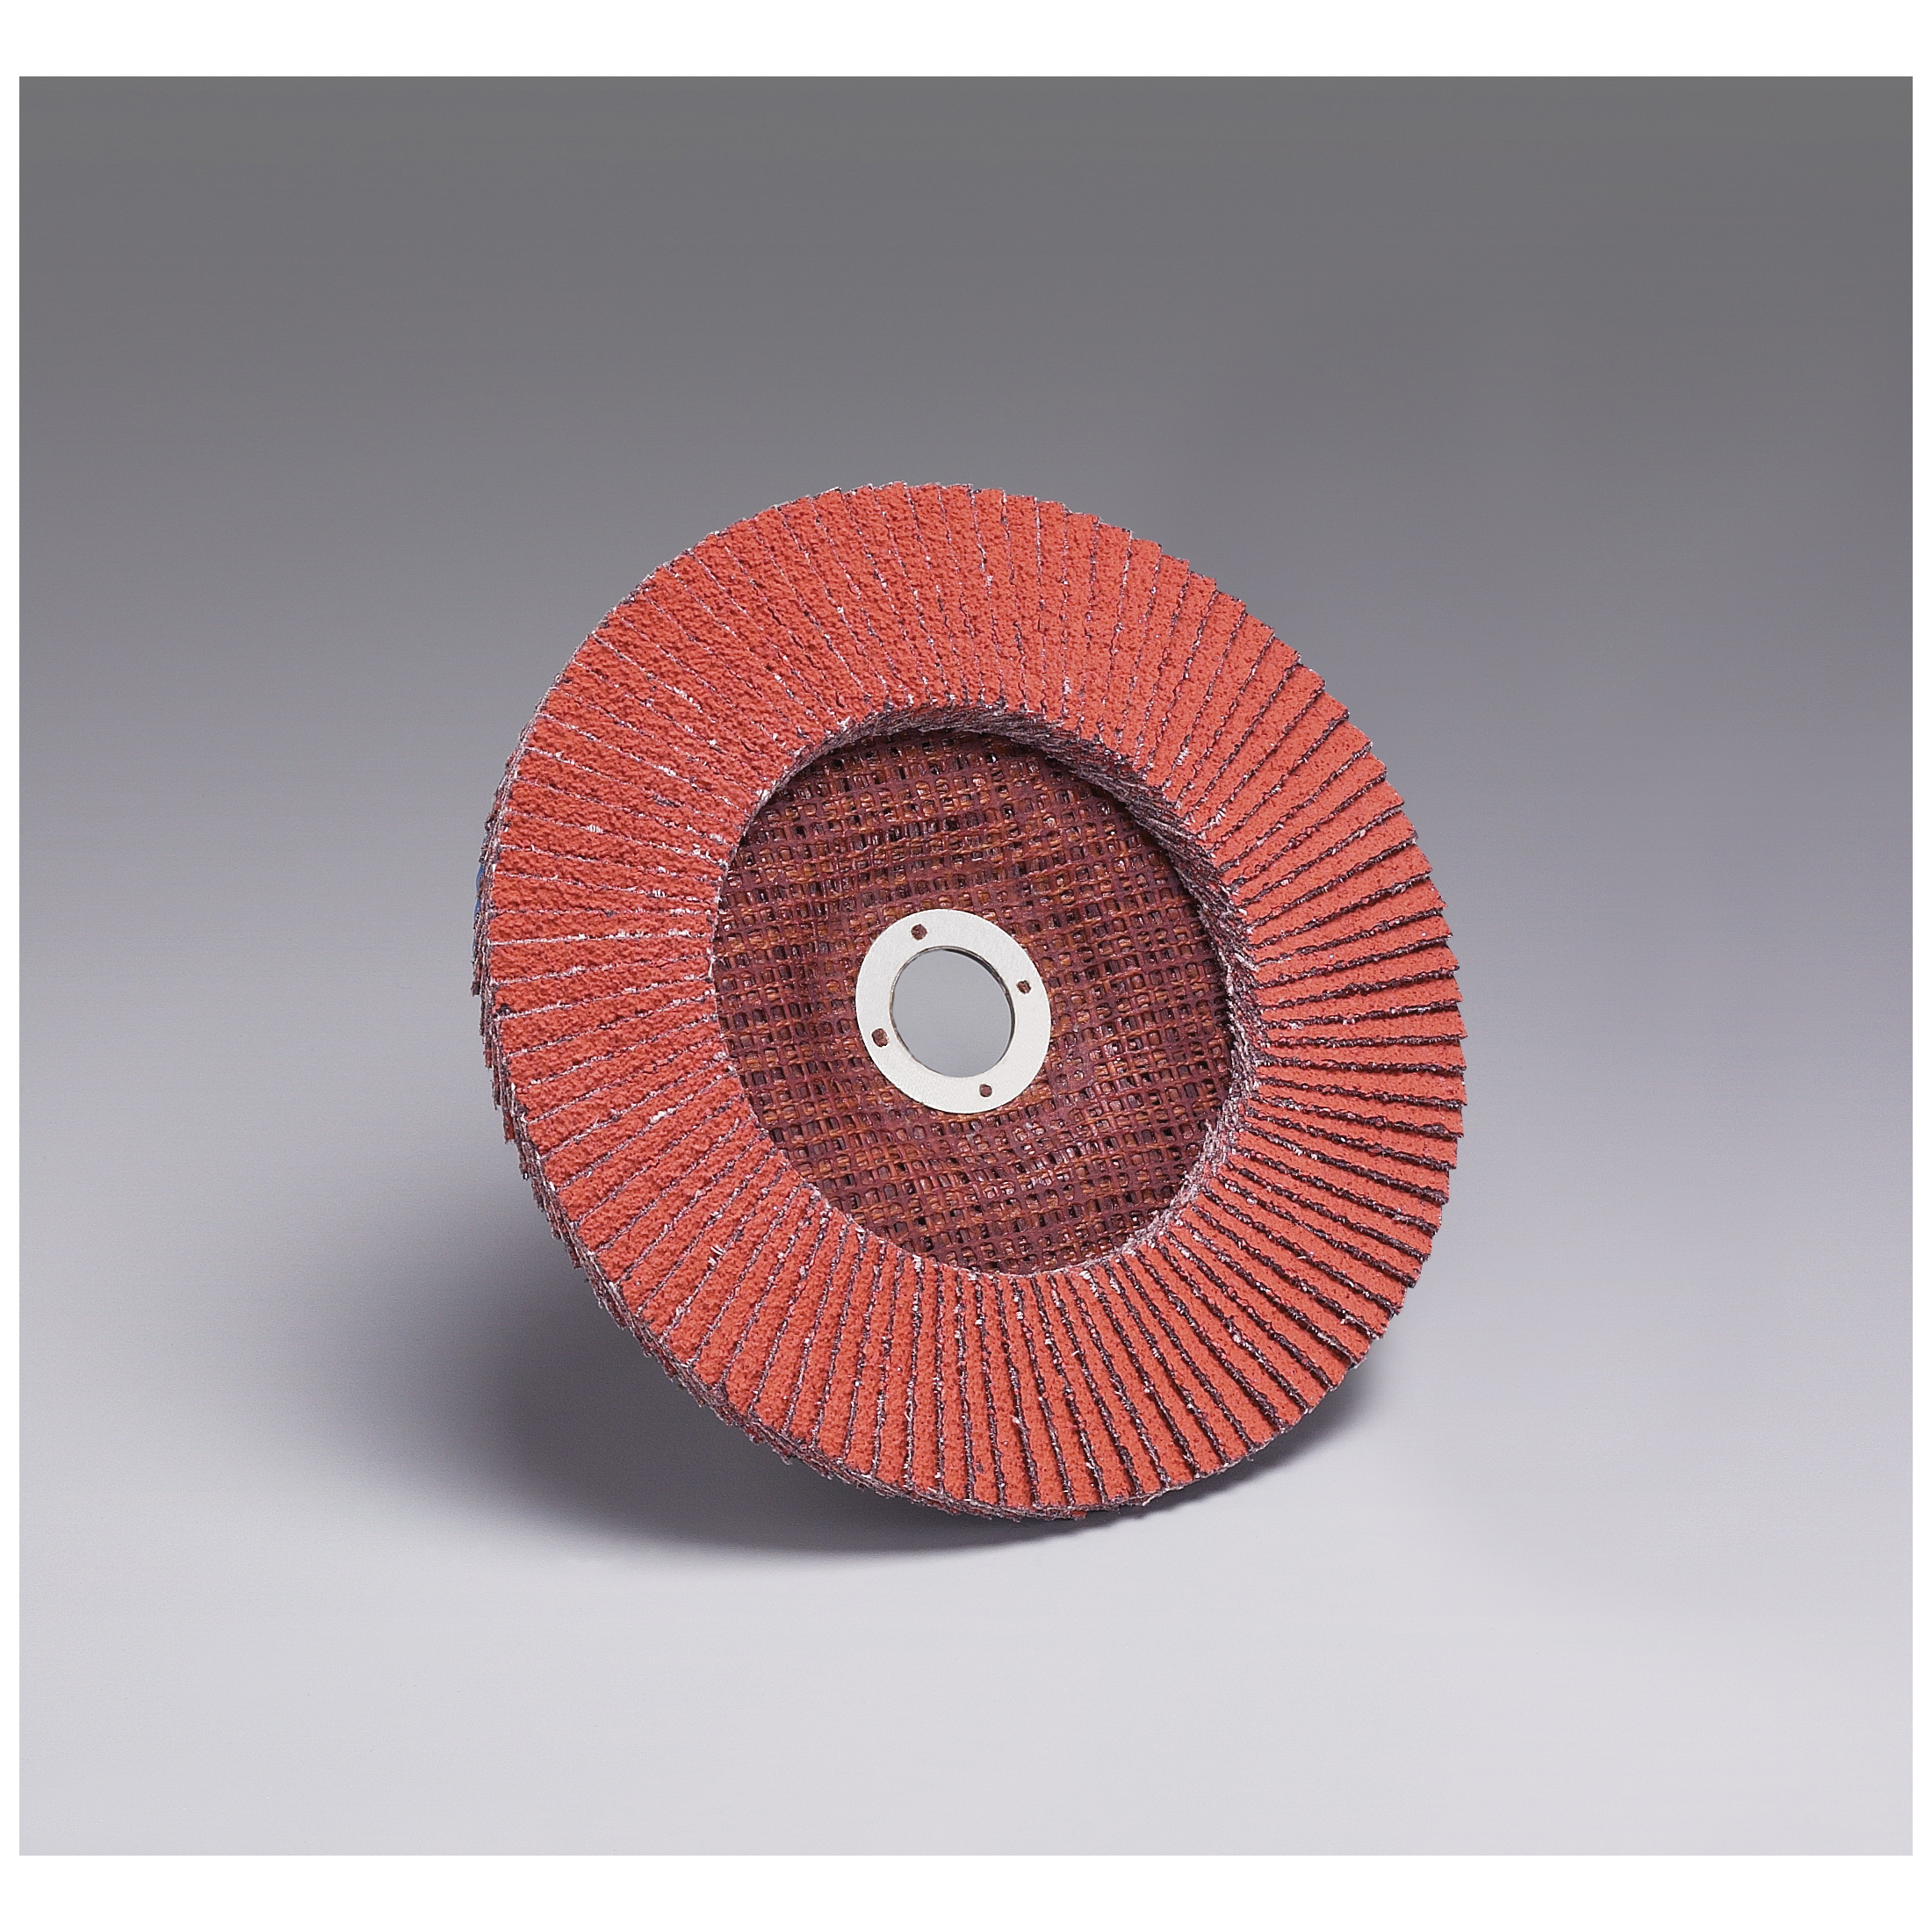 3M™ 051111-49610 Close Quick-Change Coated Abrasive Flap Disc, 7 in Dia, 7/8 in Center Hole, 60 Grit, Medium Grade, Ceramic Abrasive, Type 27 Disc